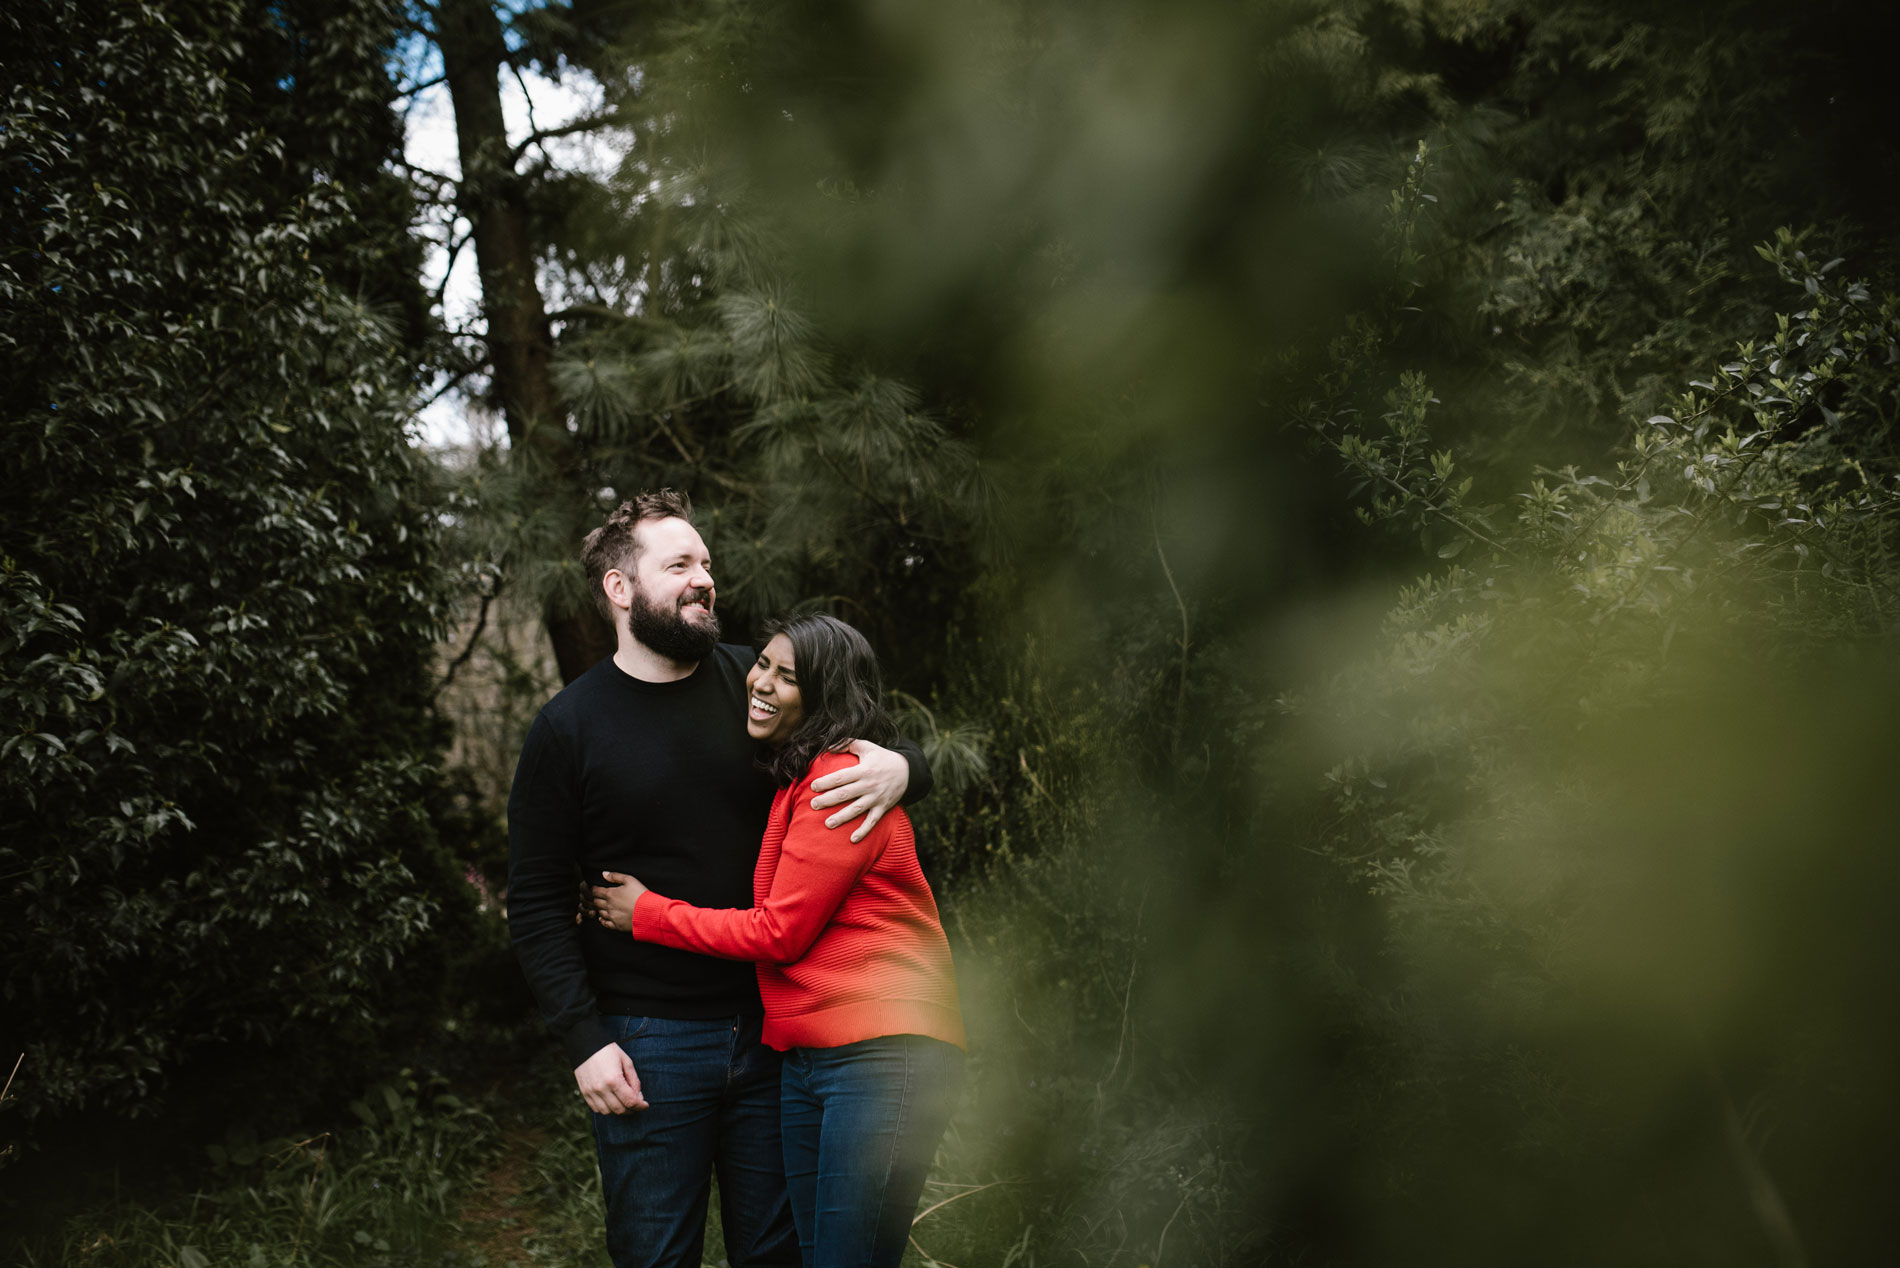 Pre wedding shoot with Andrew Brannan Photography at The Botanical Gardens, Bath.